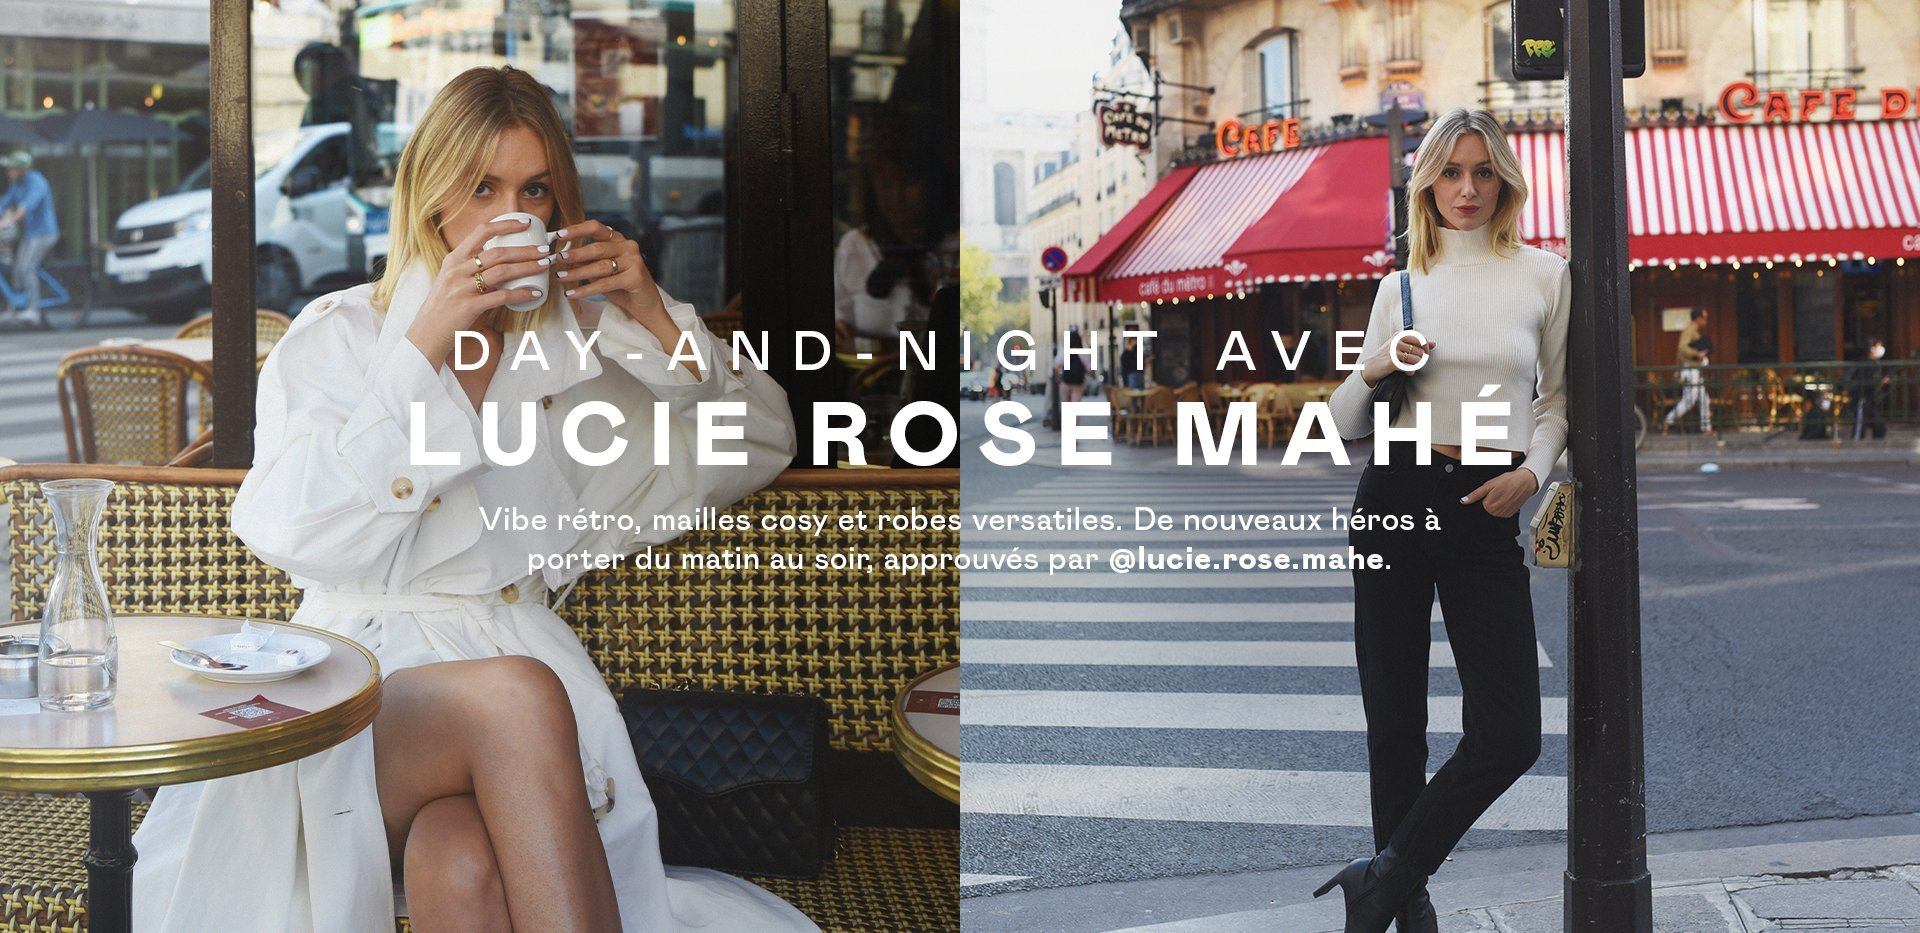 Day-and-Night avec Lucie Rose Mahé